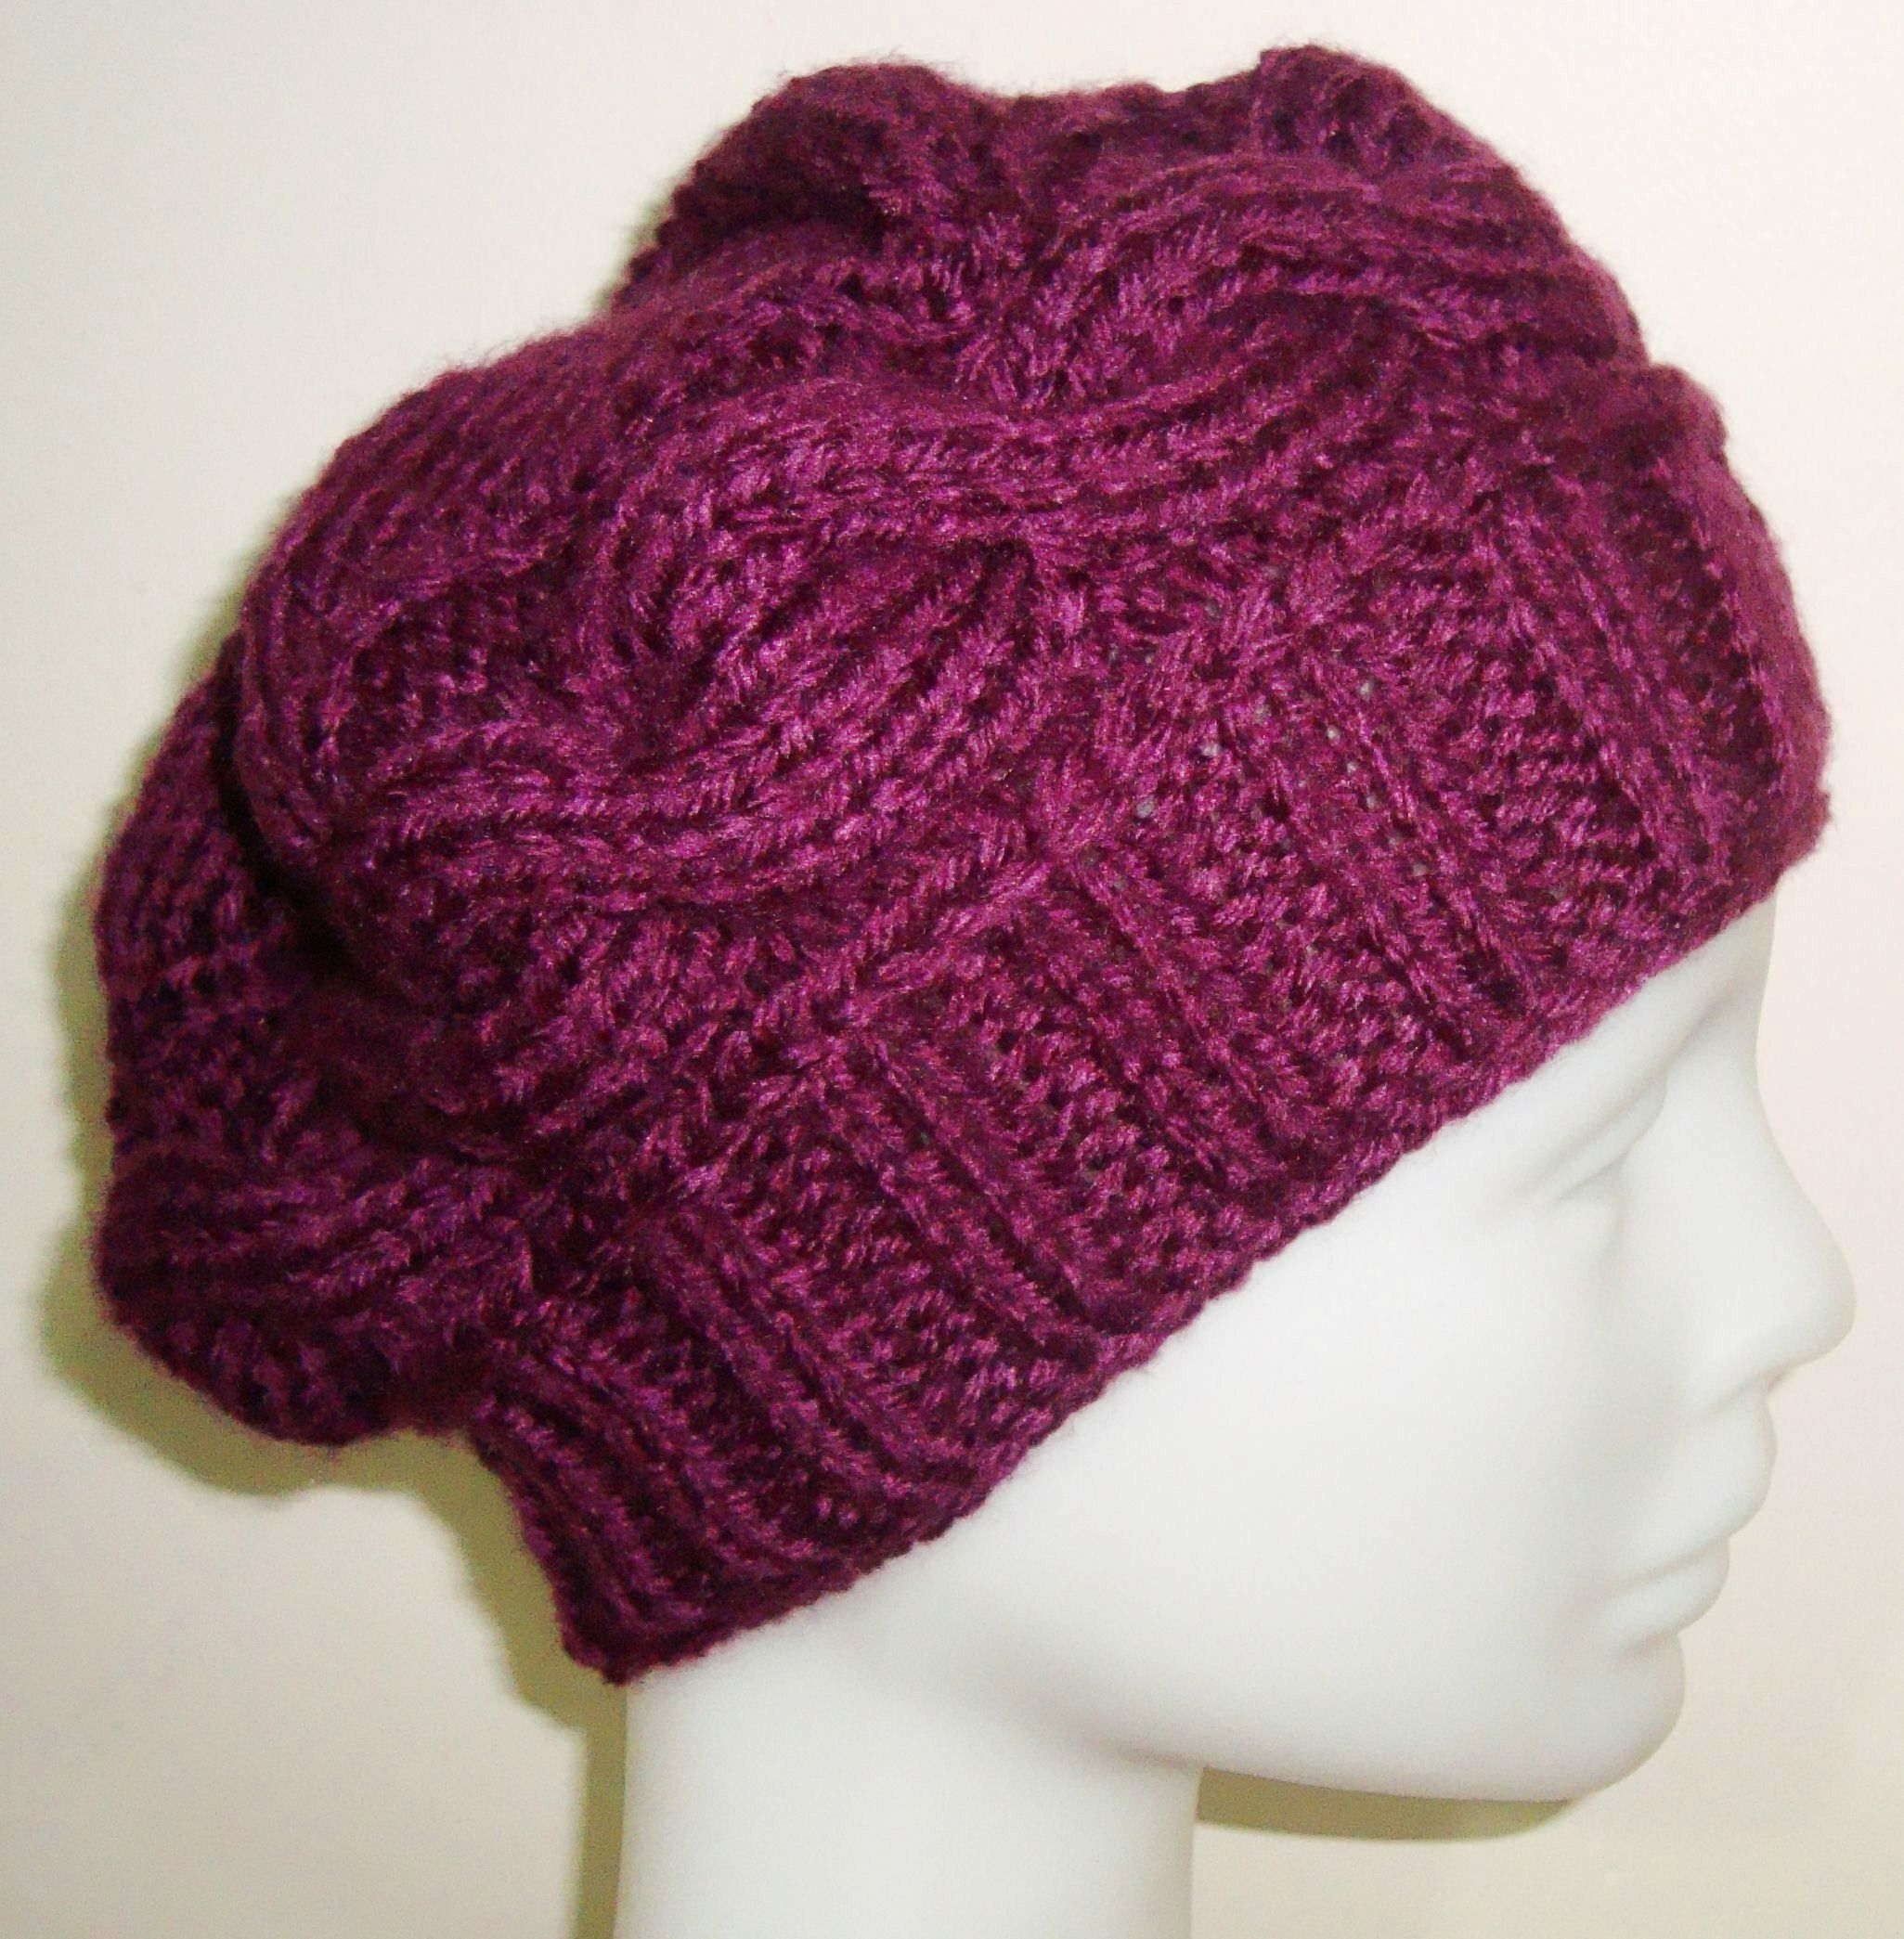 Hand Knit Women Beanie in Violet Purple. Hand Knit Women Beanie in Violet  Purple Cable Knit Hat ... 30f5eed2339a